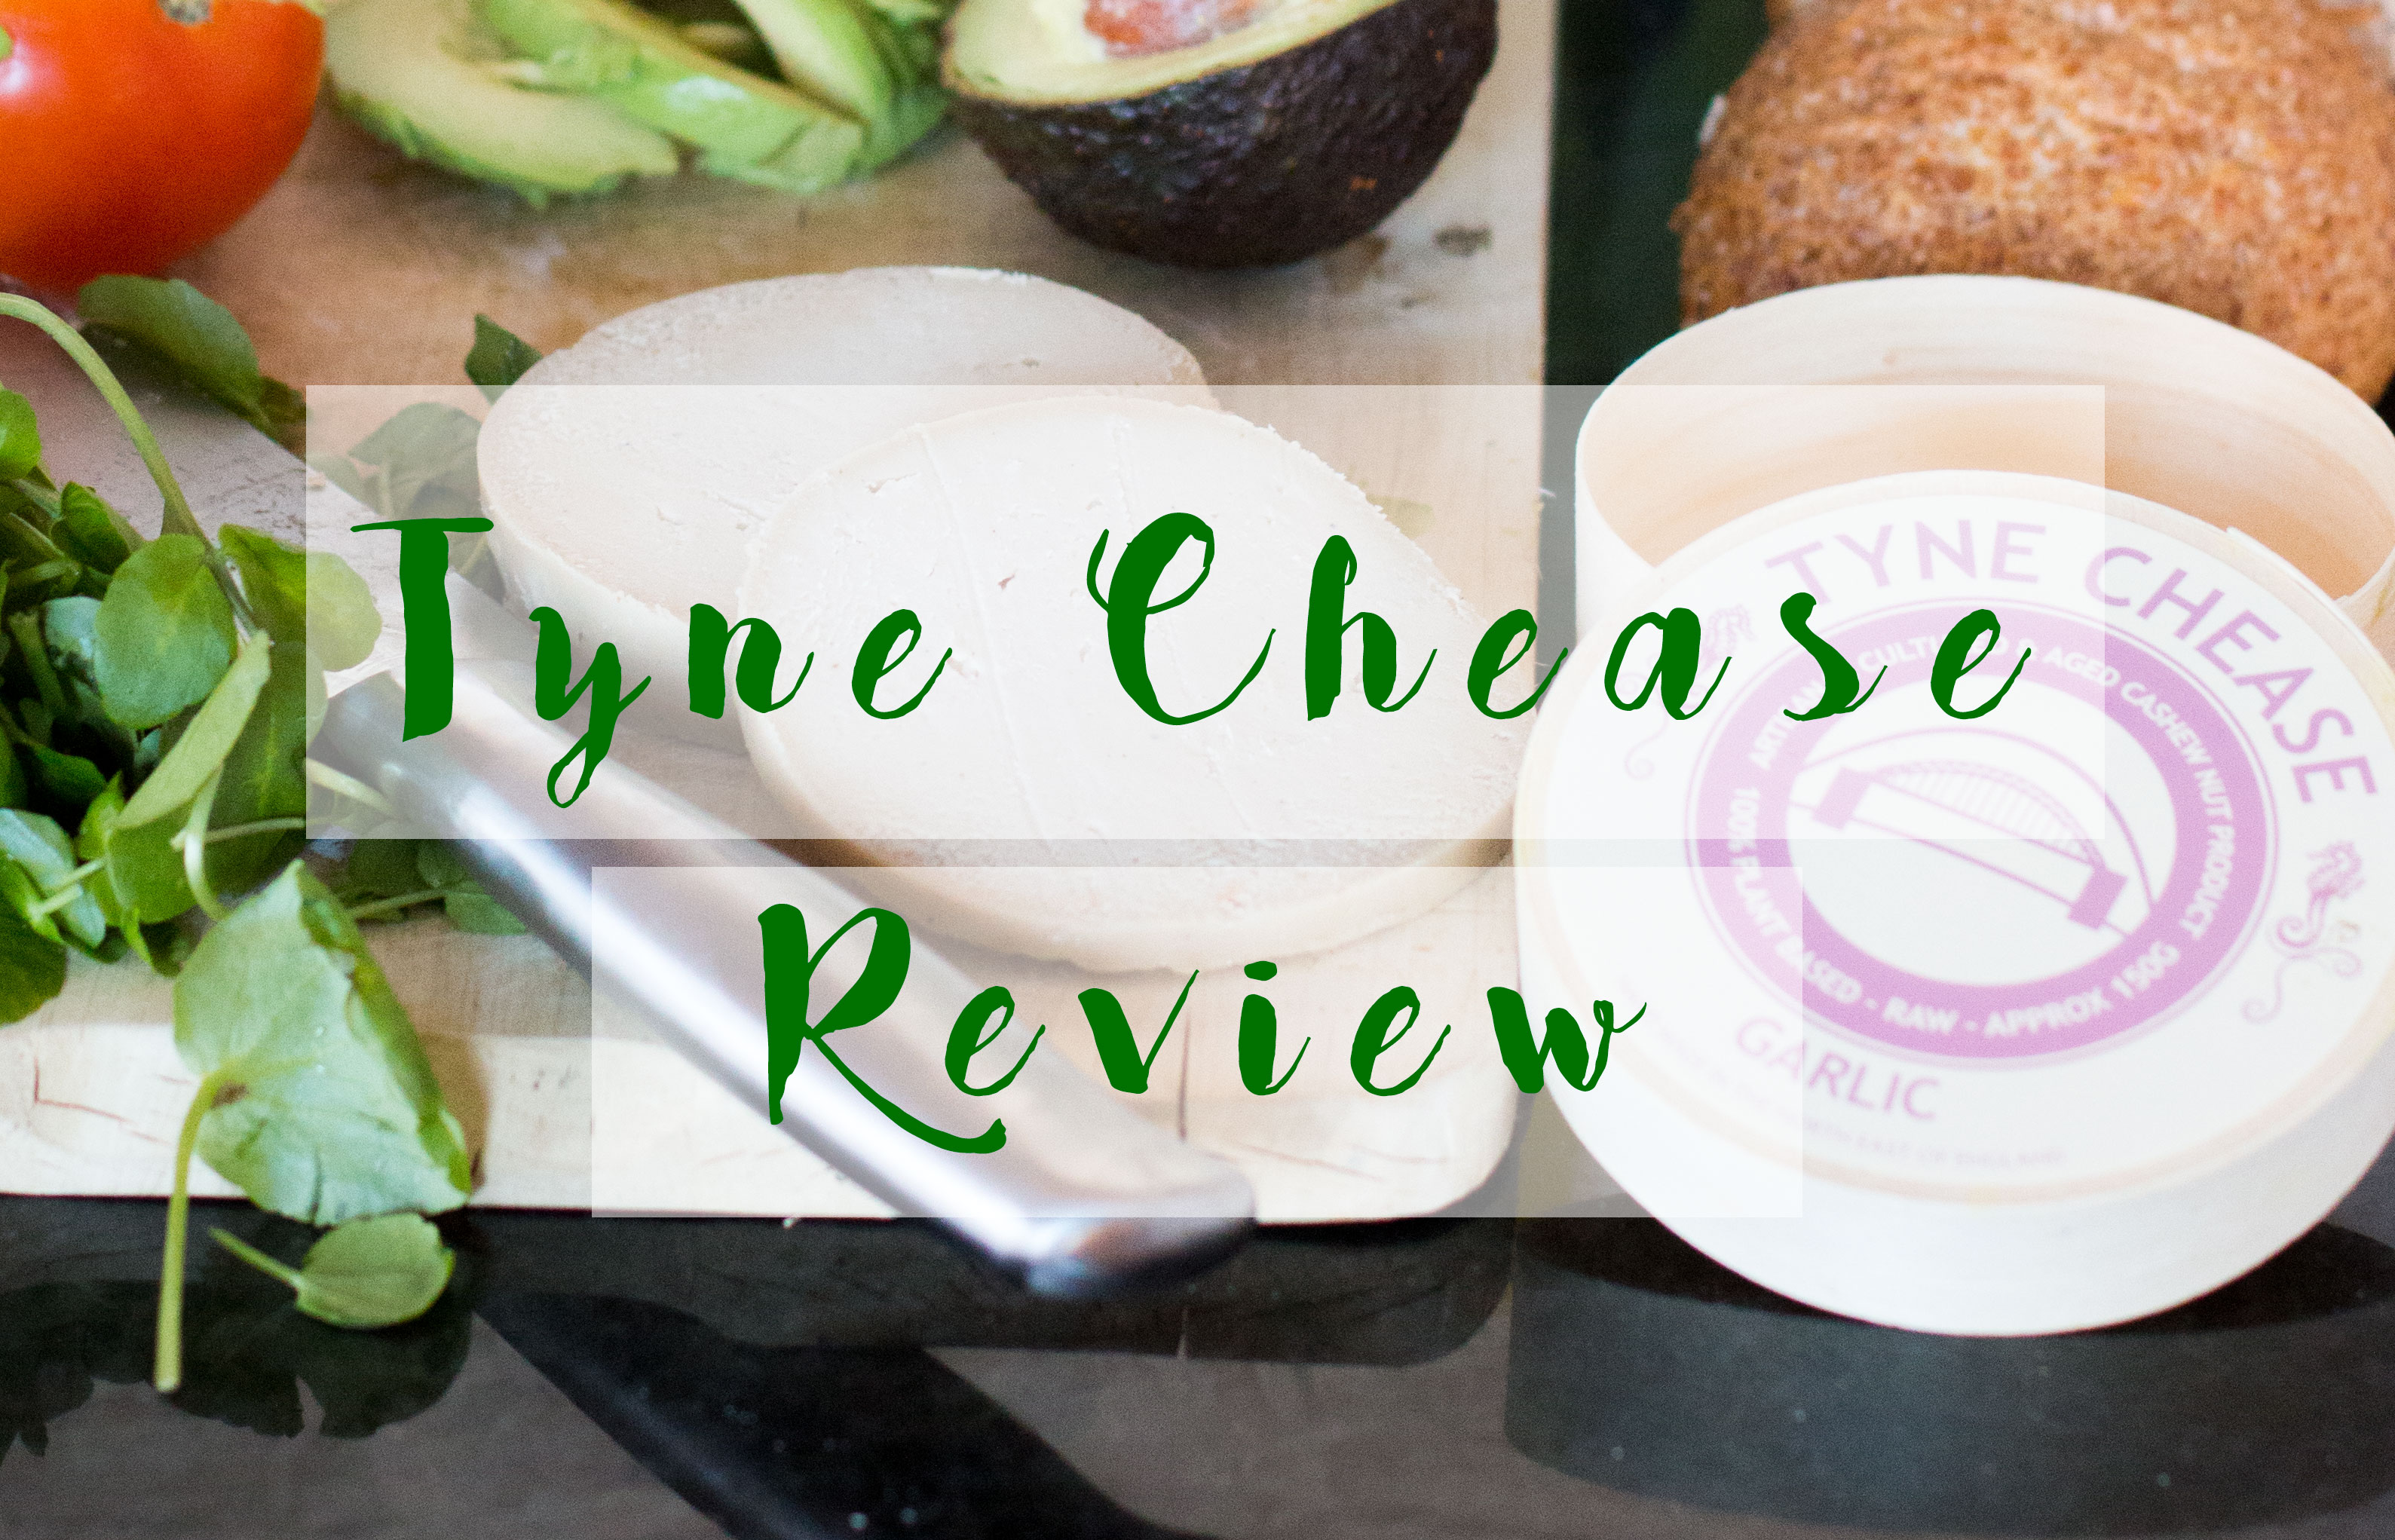 Tyne-Chease-Cheese-Review-Title